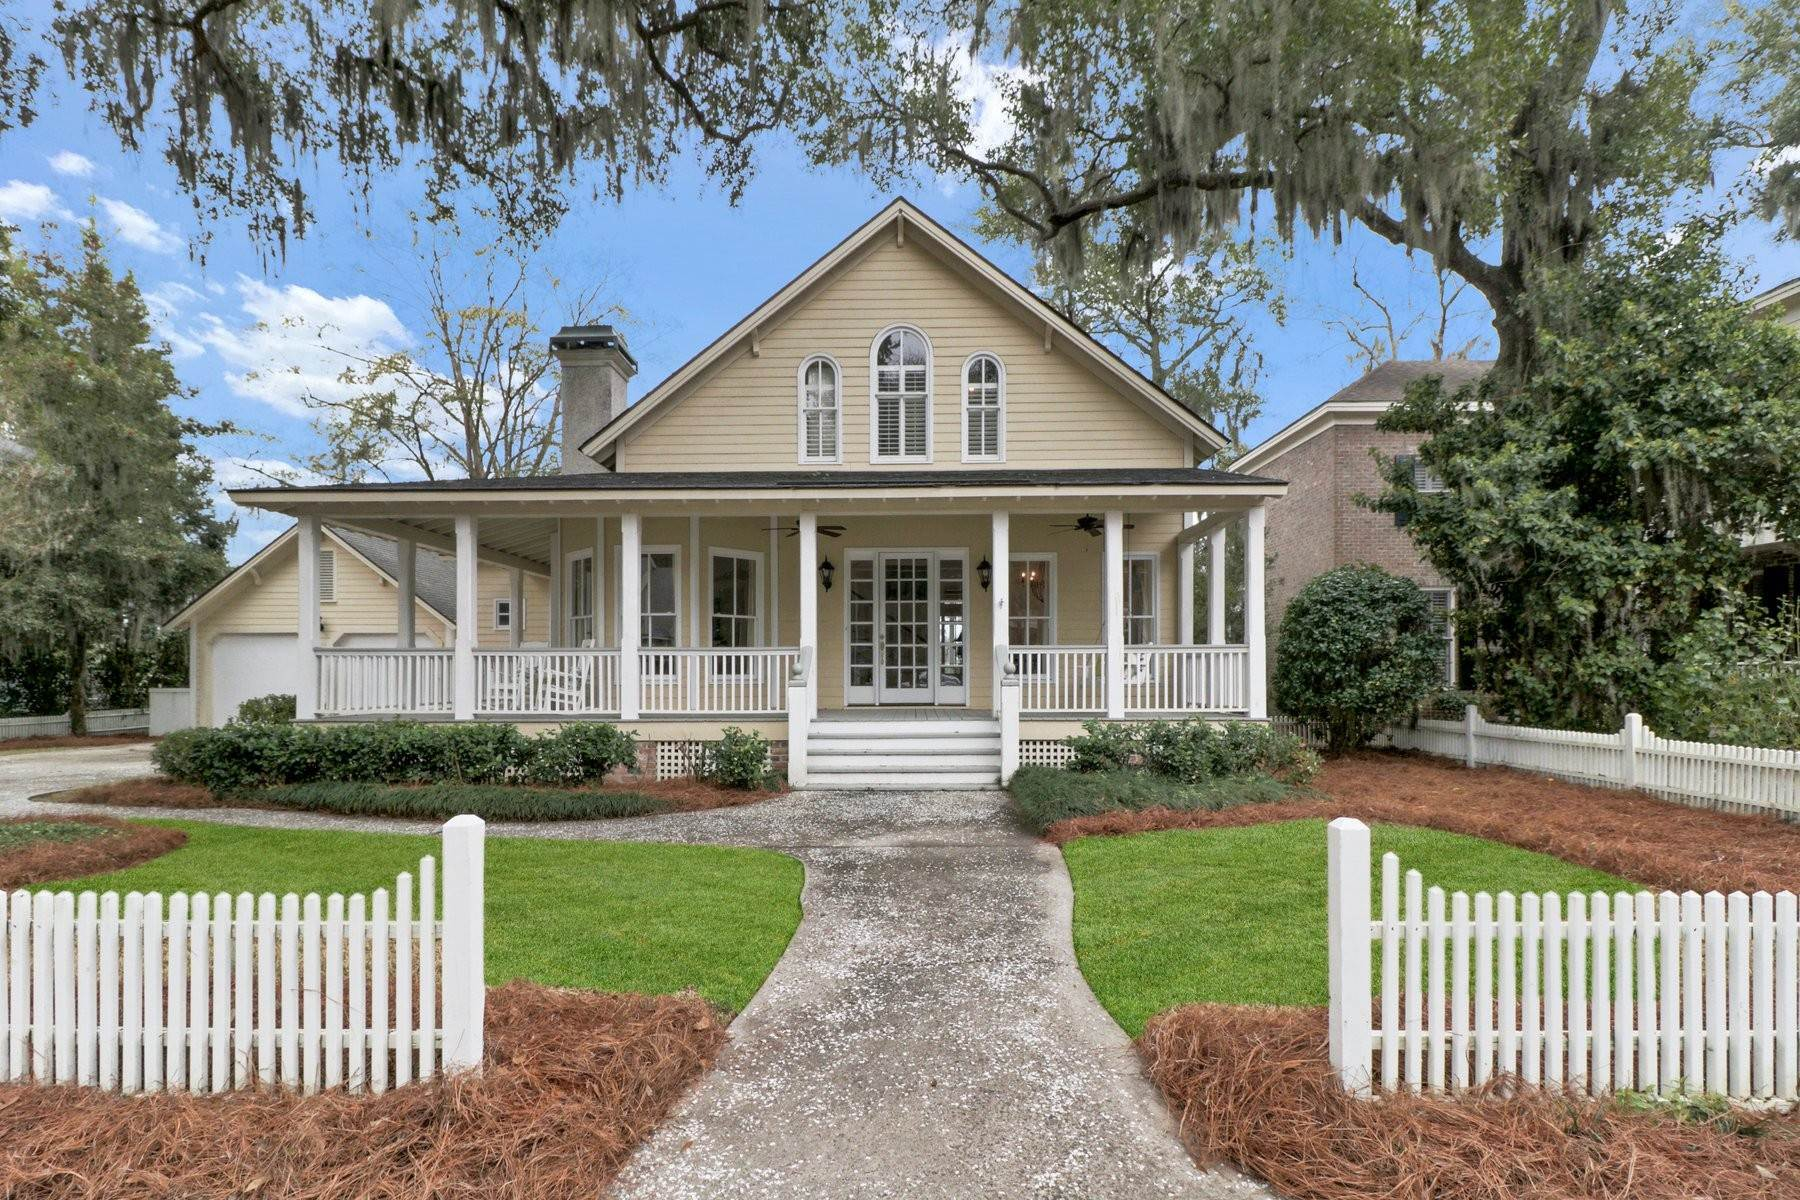 Single Family Homes for Active at Charming Coastal Home in Emerald Pointe 108 John Wesley Way Savannah, Georgia 31404 United States